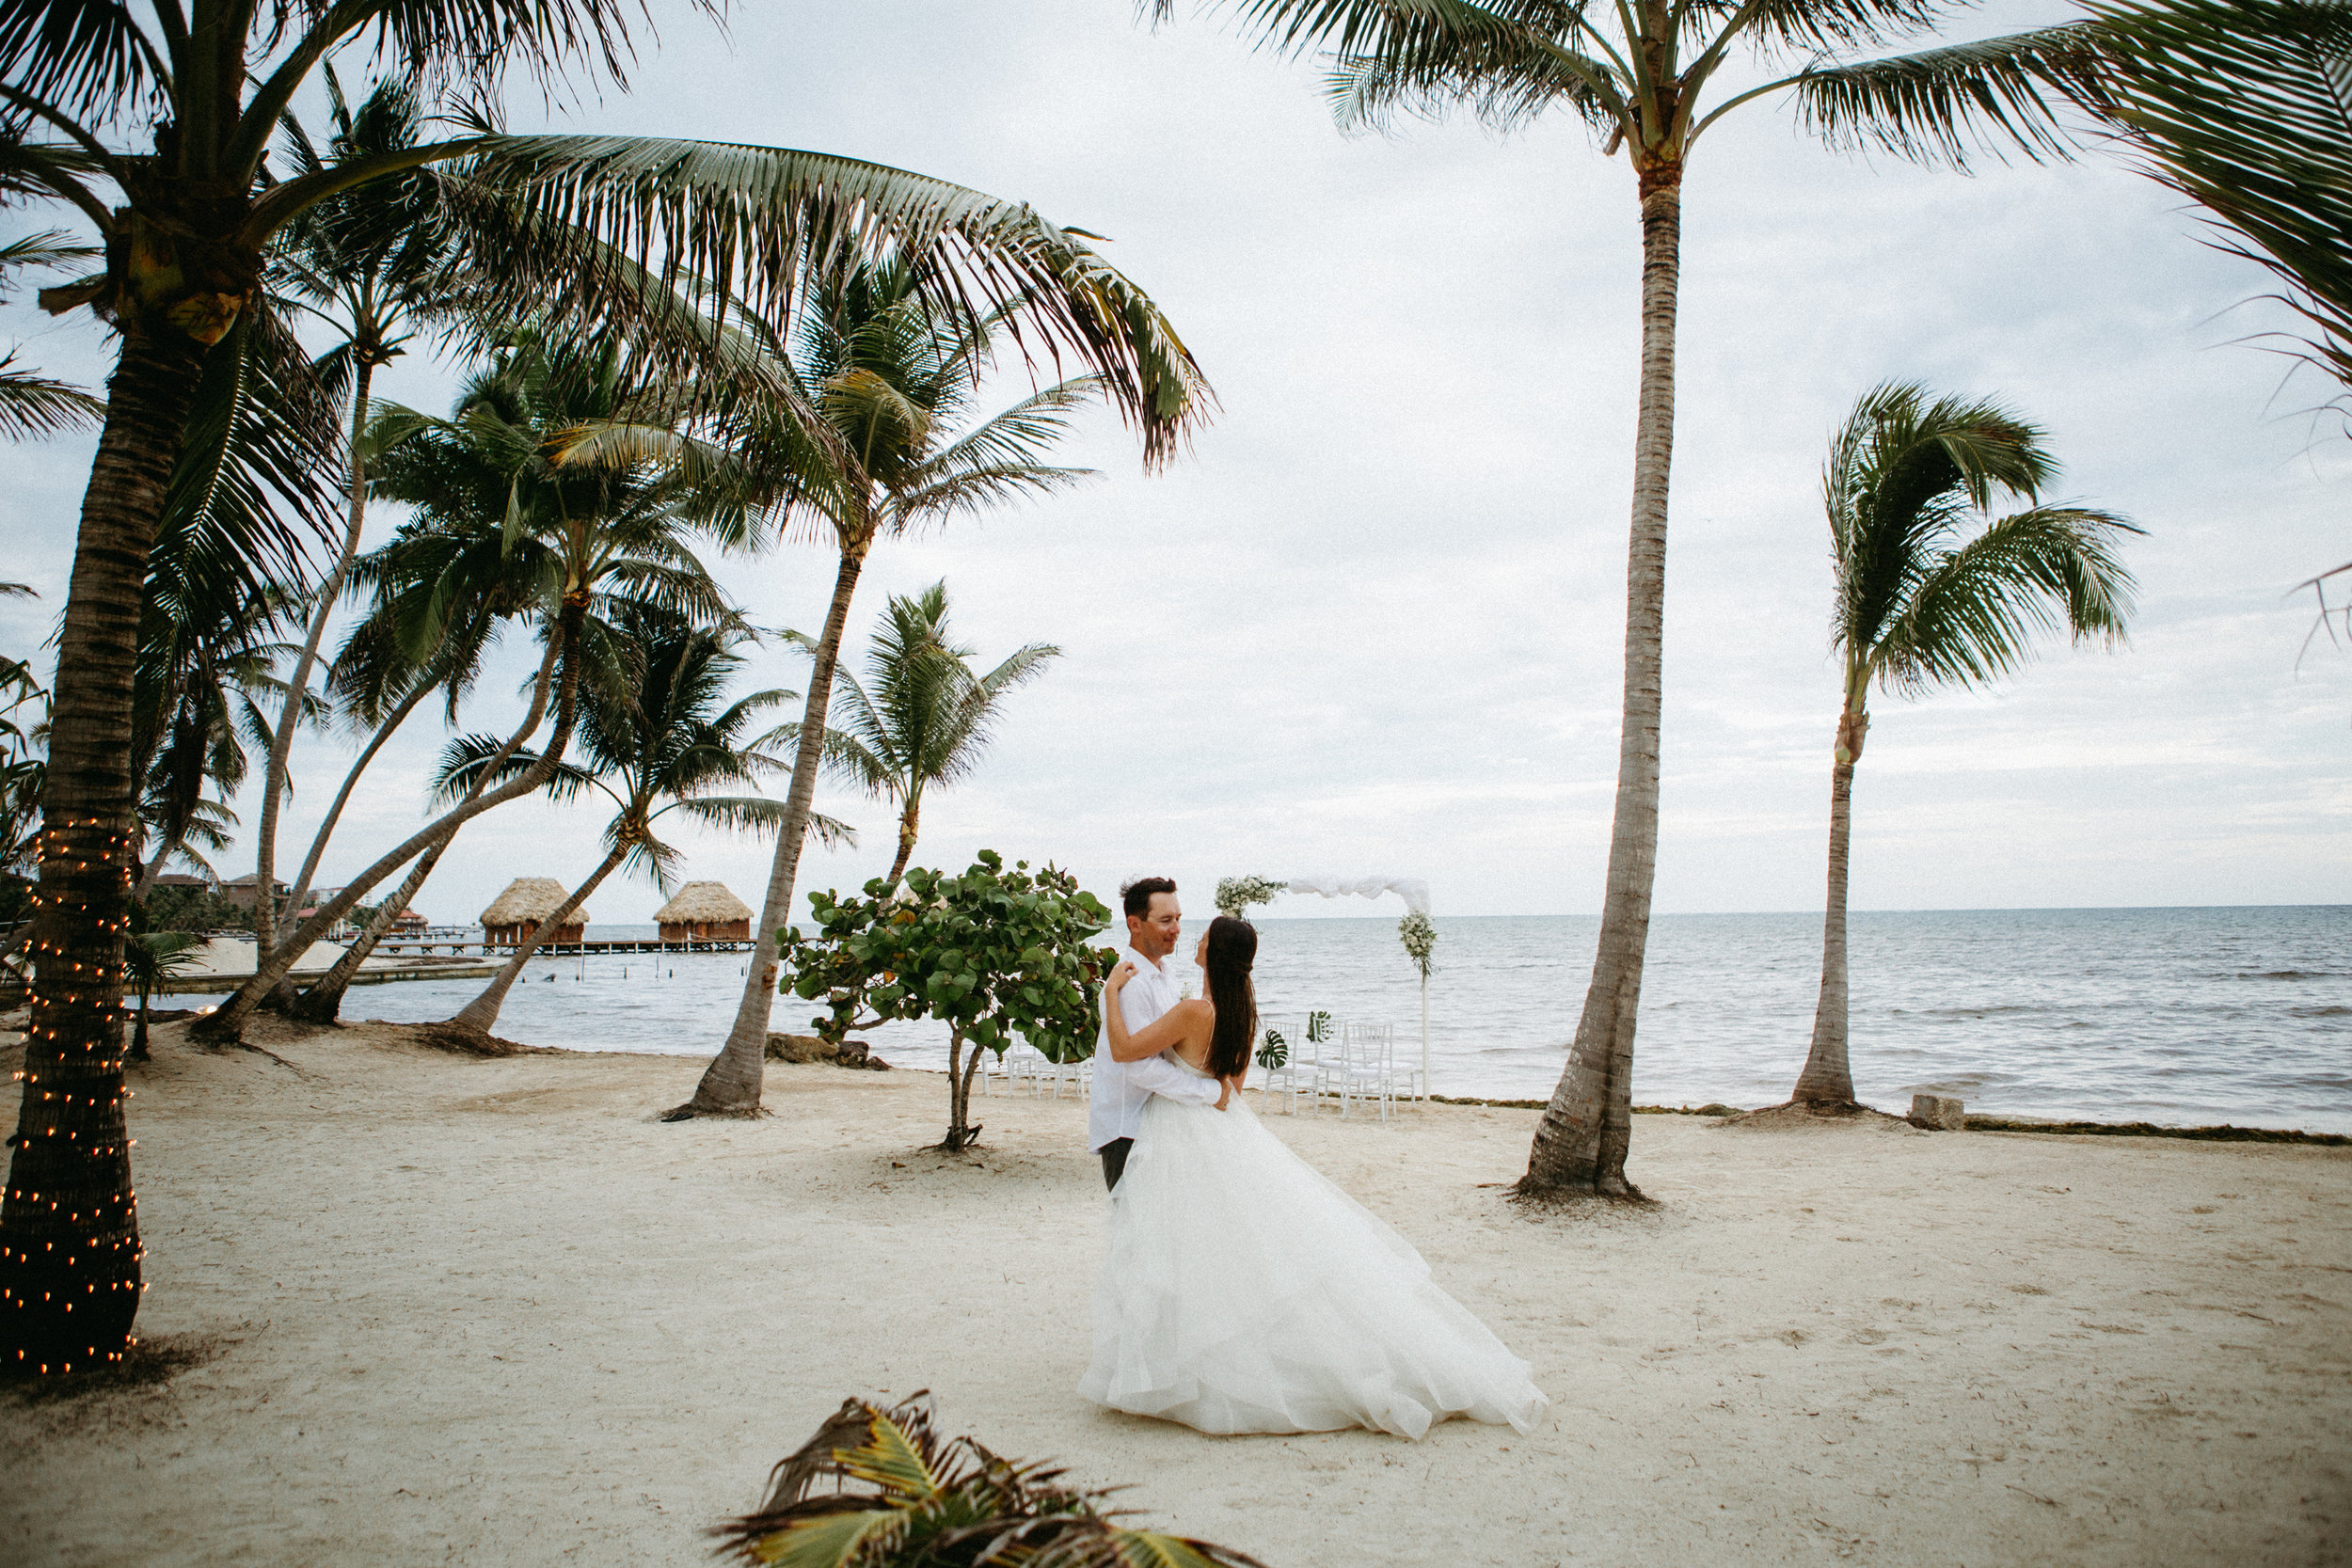 san-pescador-belize-wedding-christinemariephoto-j-k-111.jpg